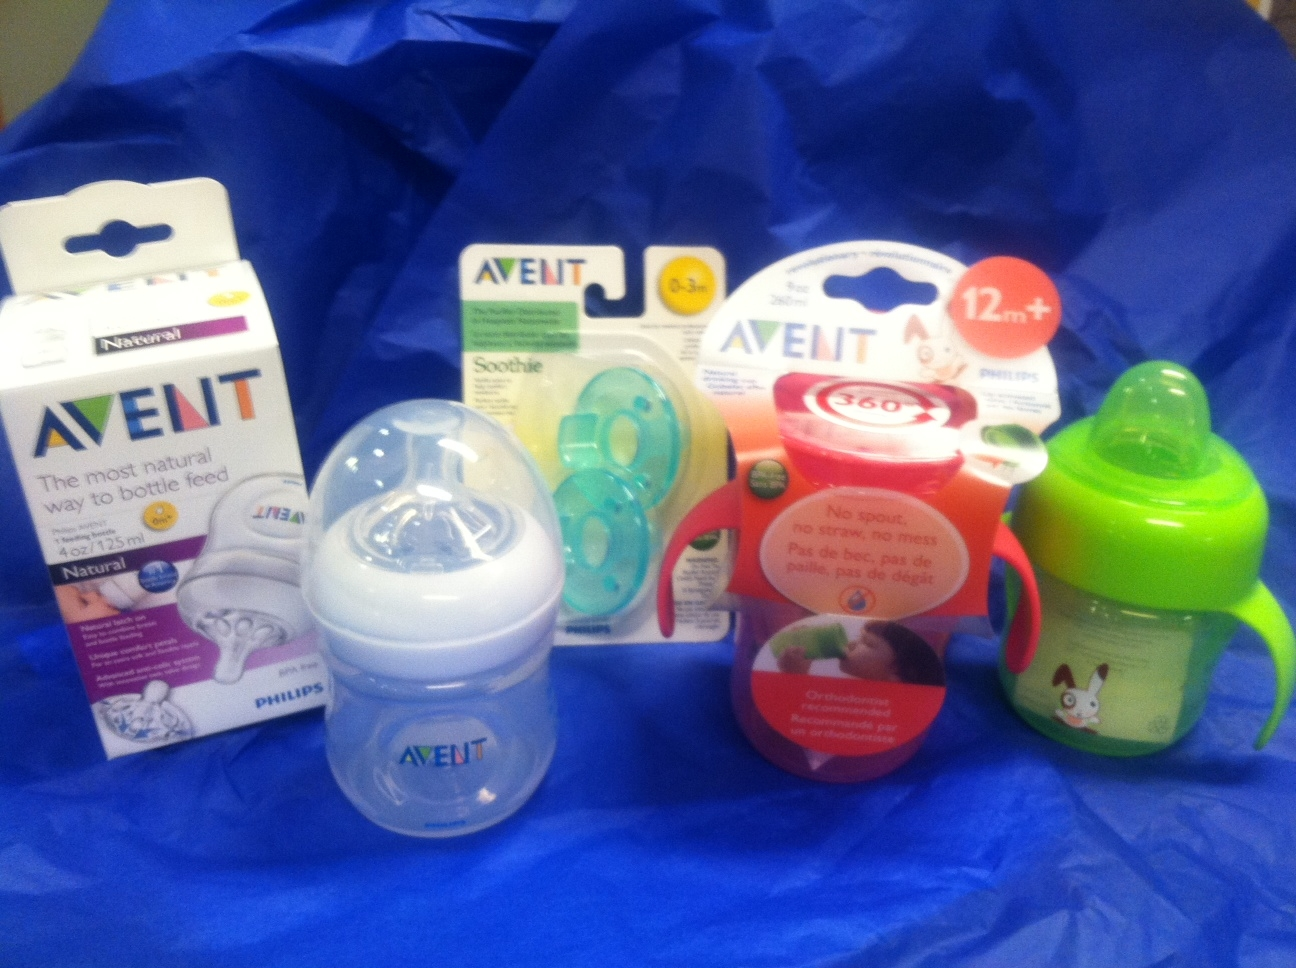 Philips AVENT Comfort Pump and Natural Bottle review